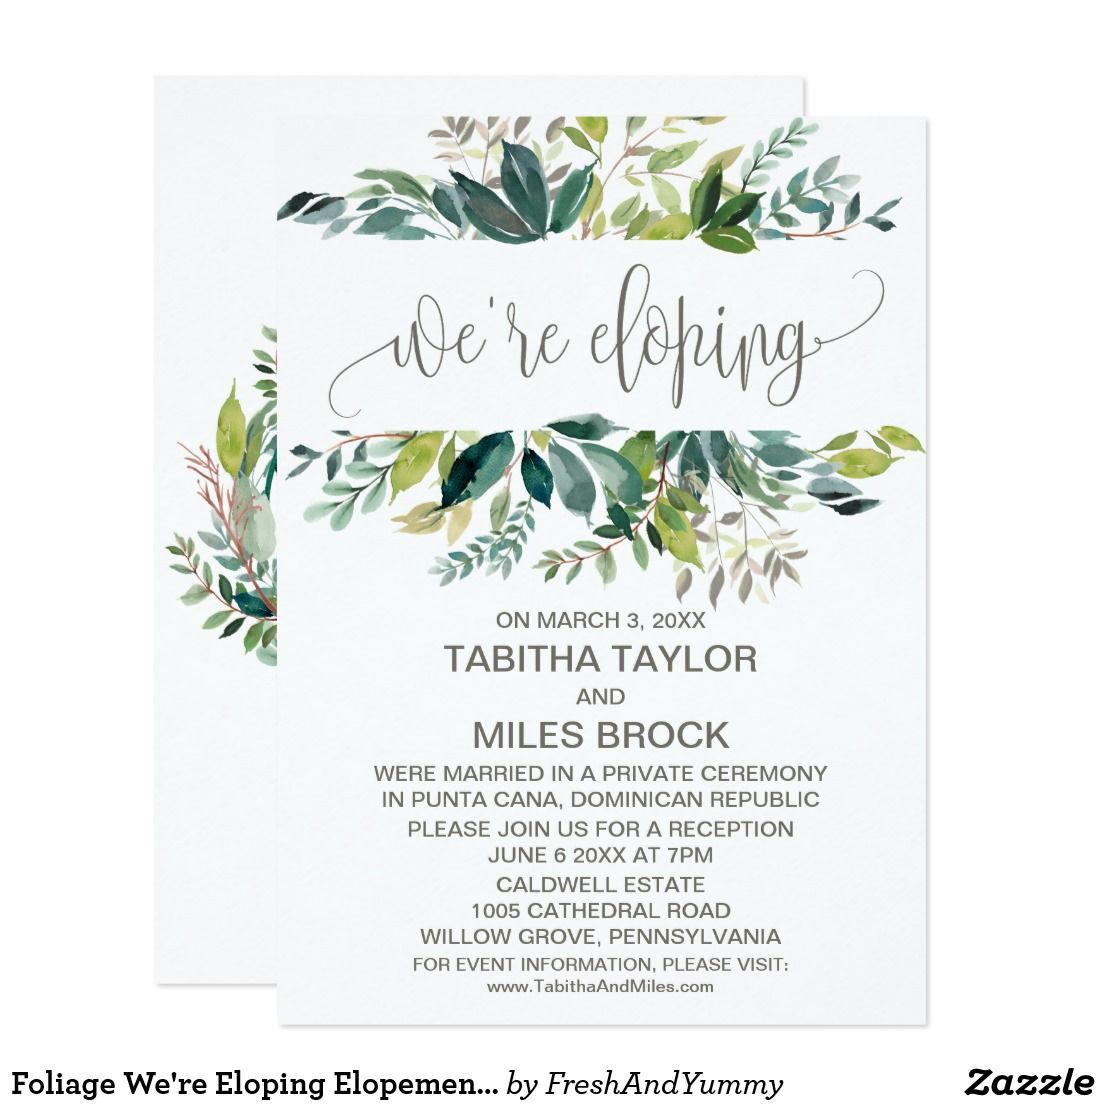 Wedding decorations set october 2018 Foliage Weure Eloping Elopement Reception Invitation in